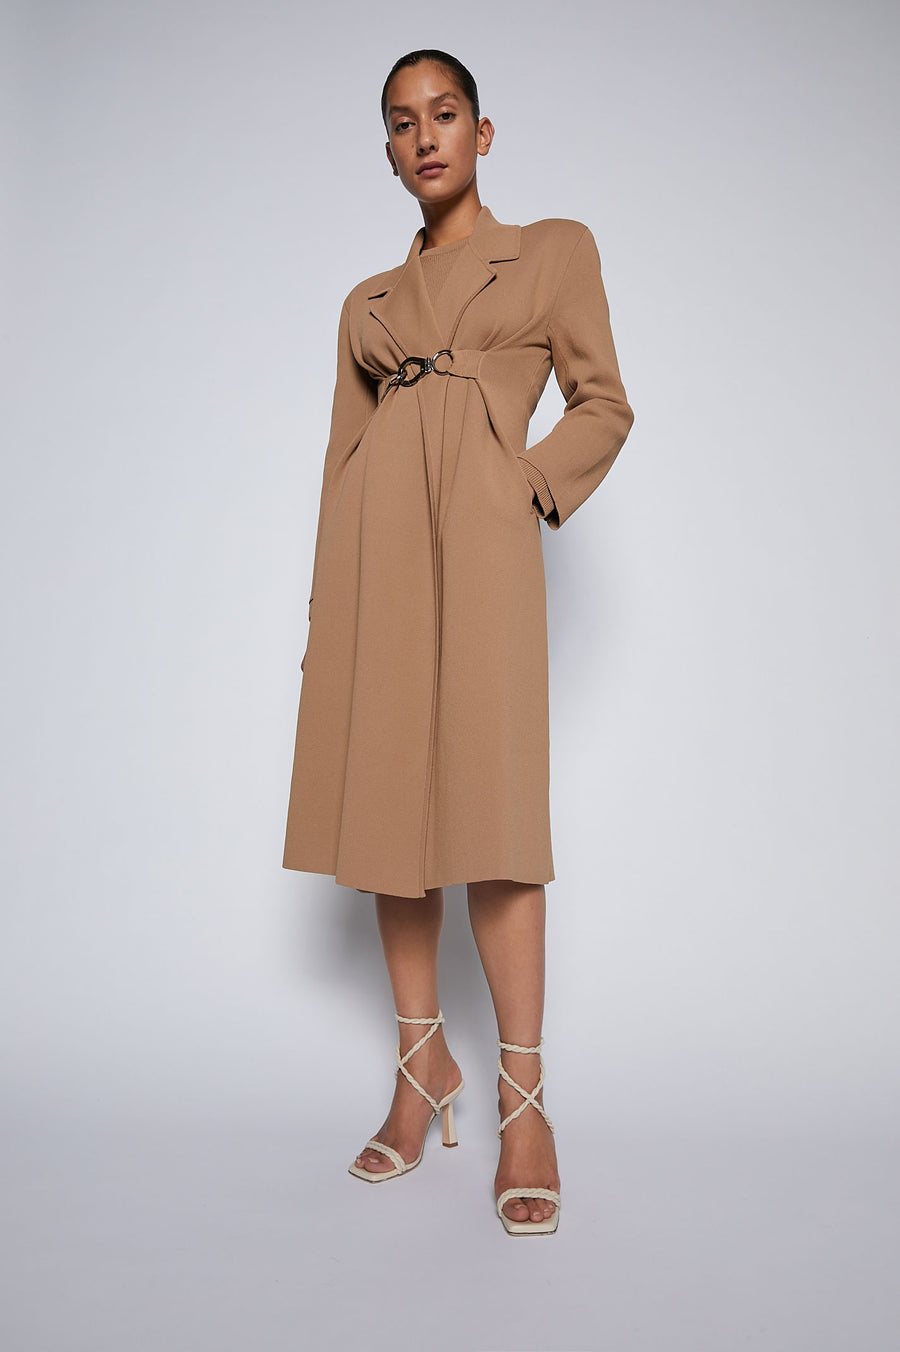 The Crepe Knit Belted Coat combines the elegant structure of our crepe knit fabrication with a soft front drape closure